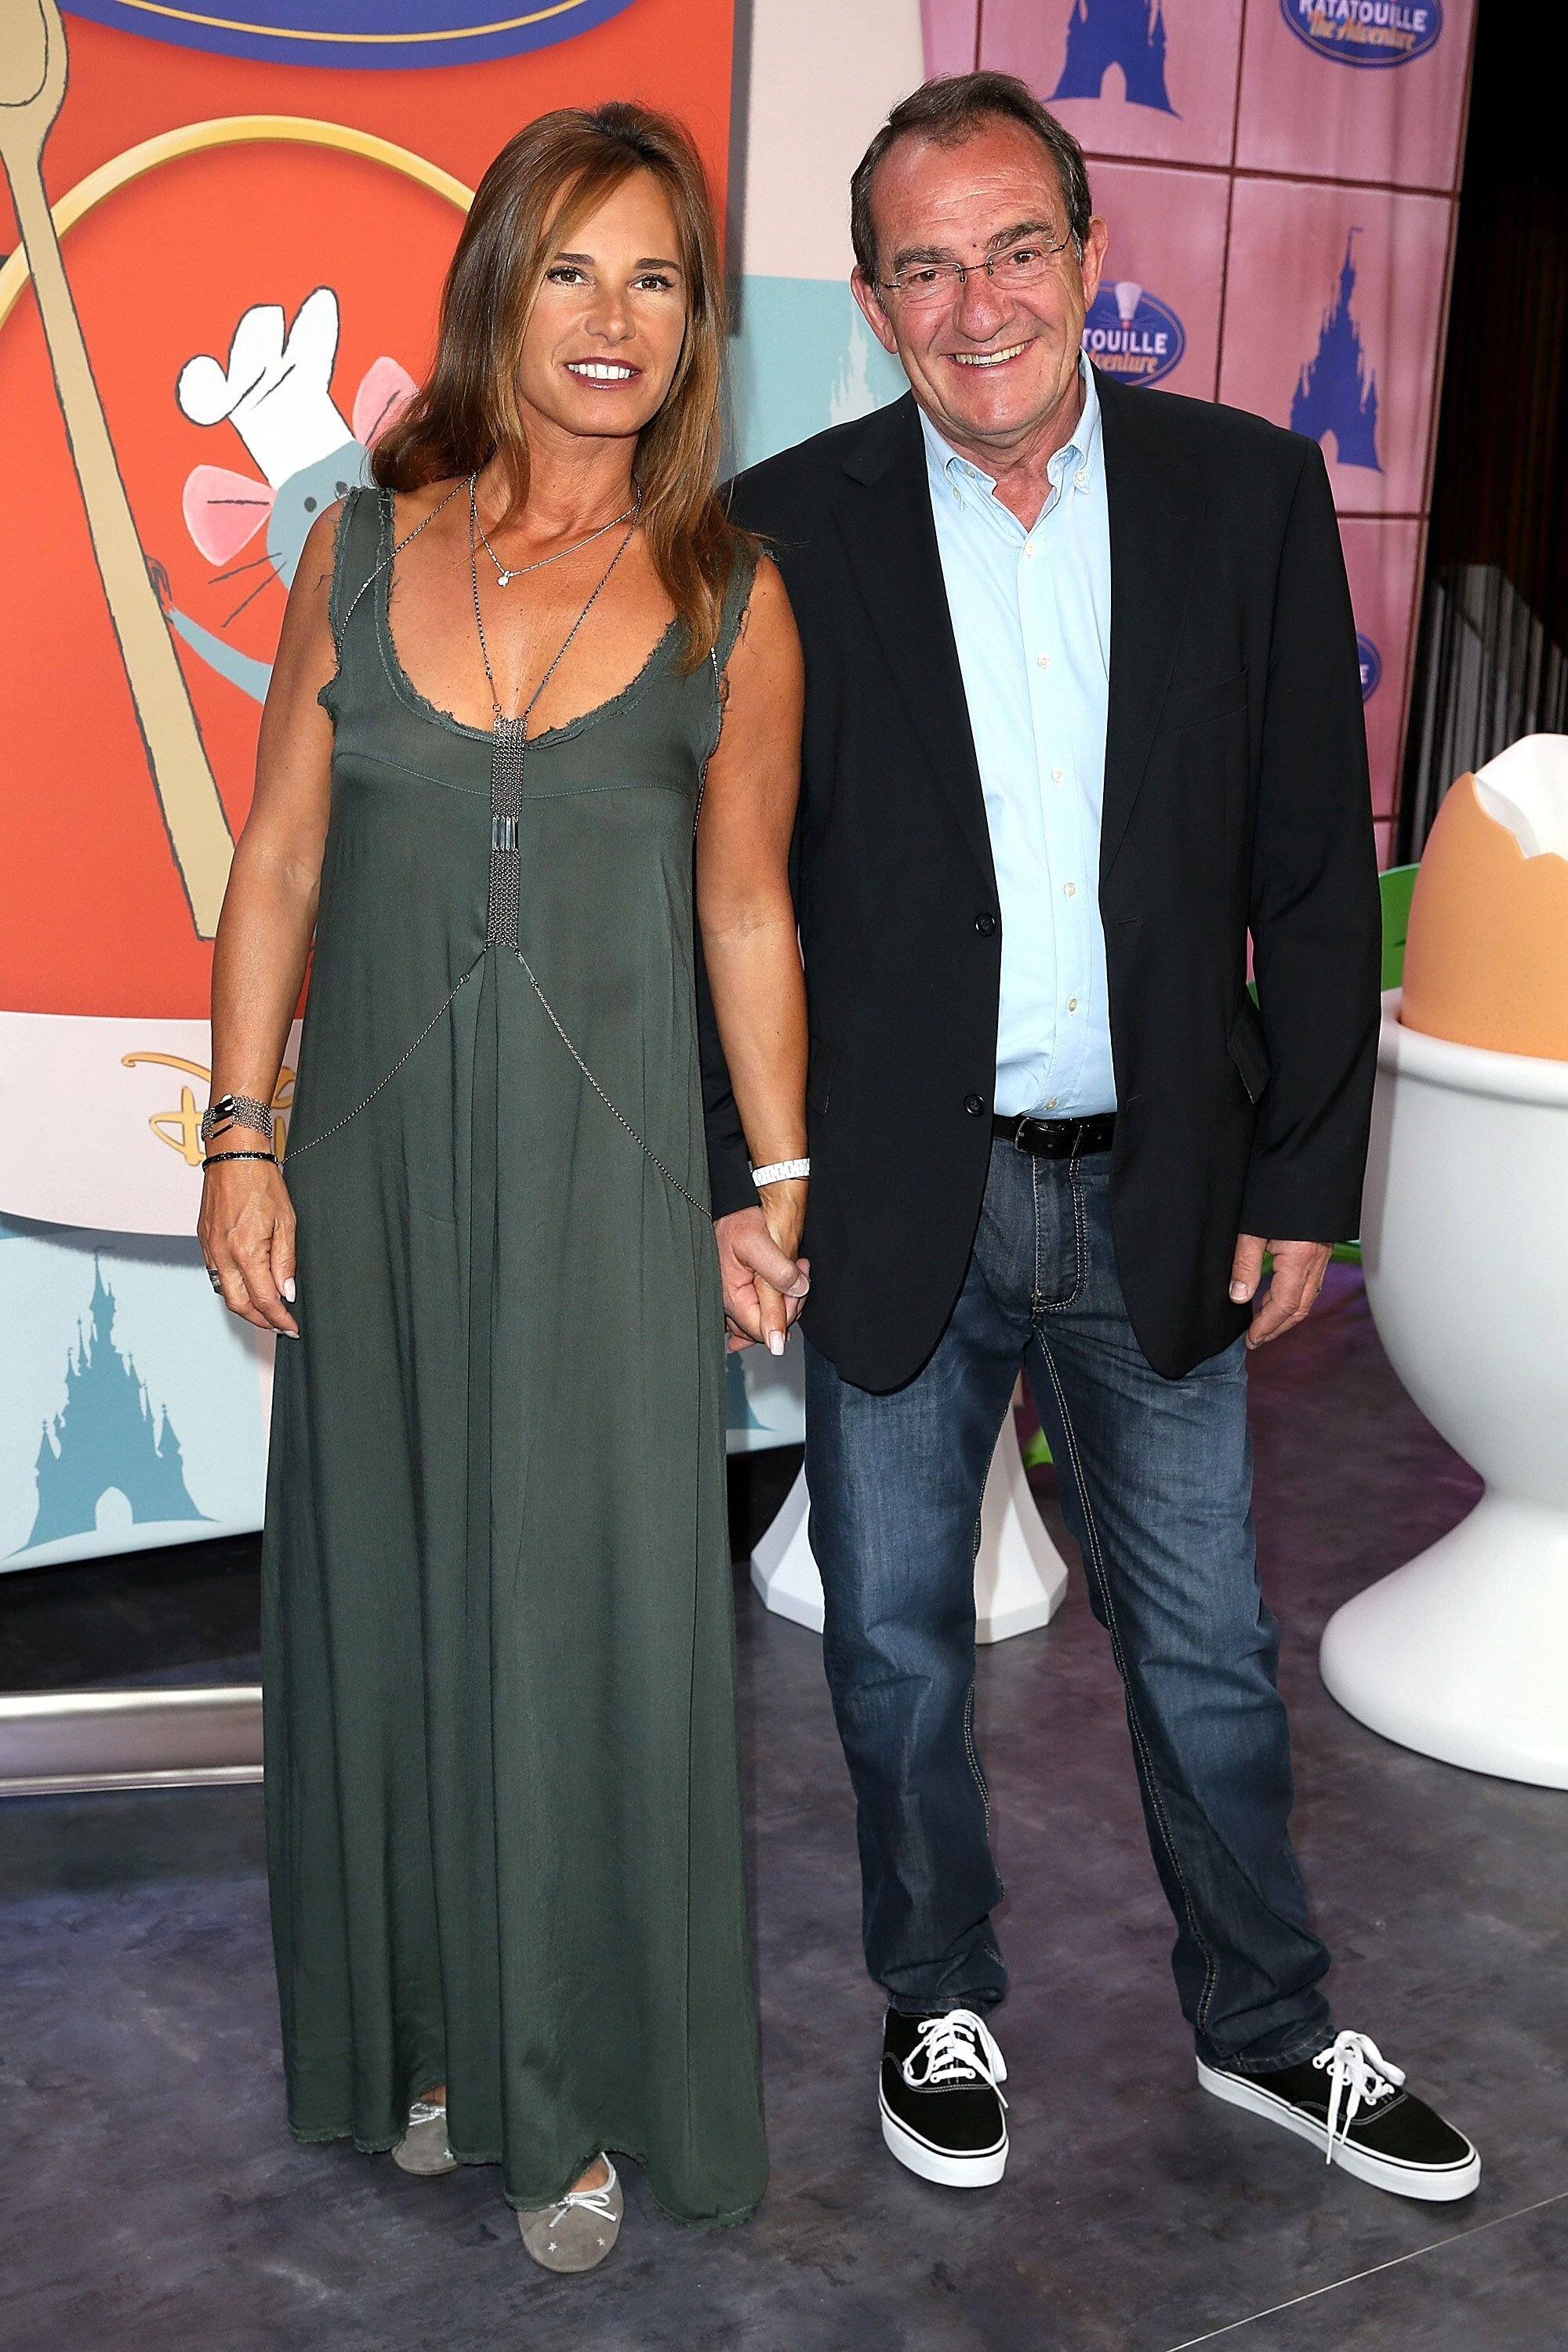 Nathalie Marquay et Jean Pierre Pernaut assistent au lancement de 'Ratatouille:The Adventure' à Disneyland Resort Paris à Paris, France.  | Photo : Getty Images